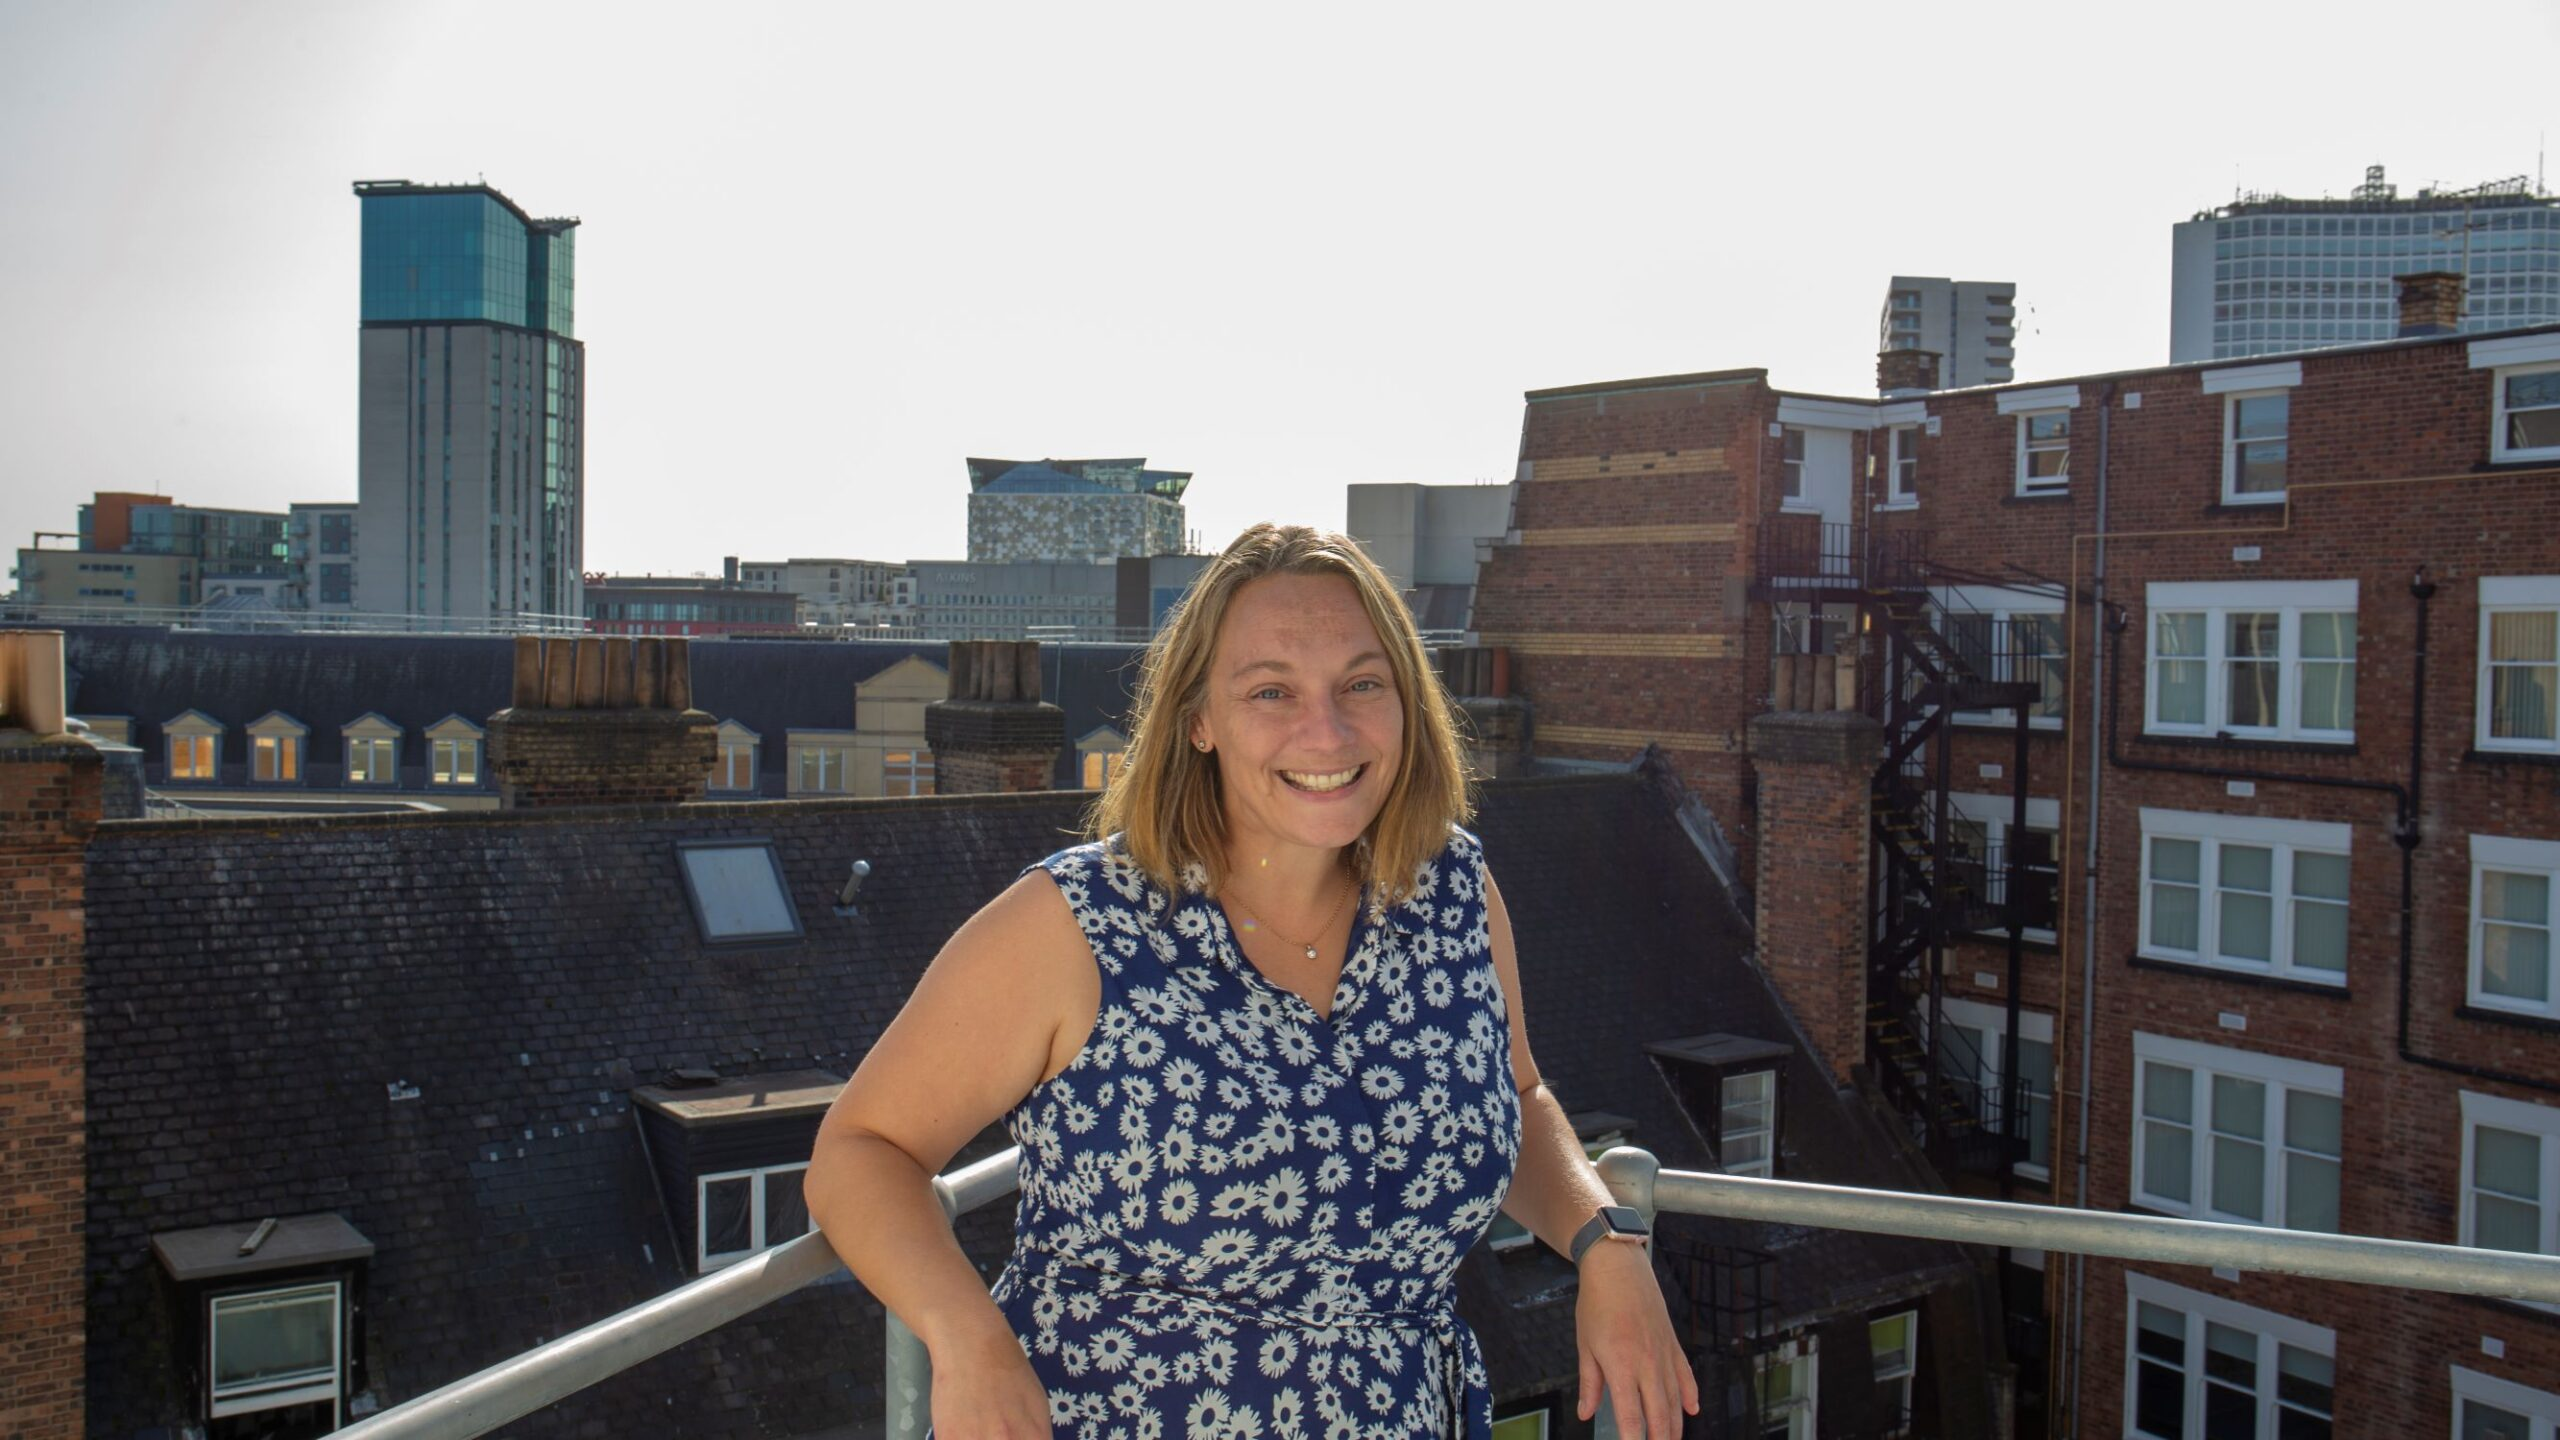 Birmingham PR Consultancy CEO Elected President of National Body for Public Relations Professionals